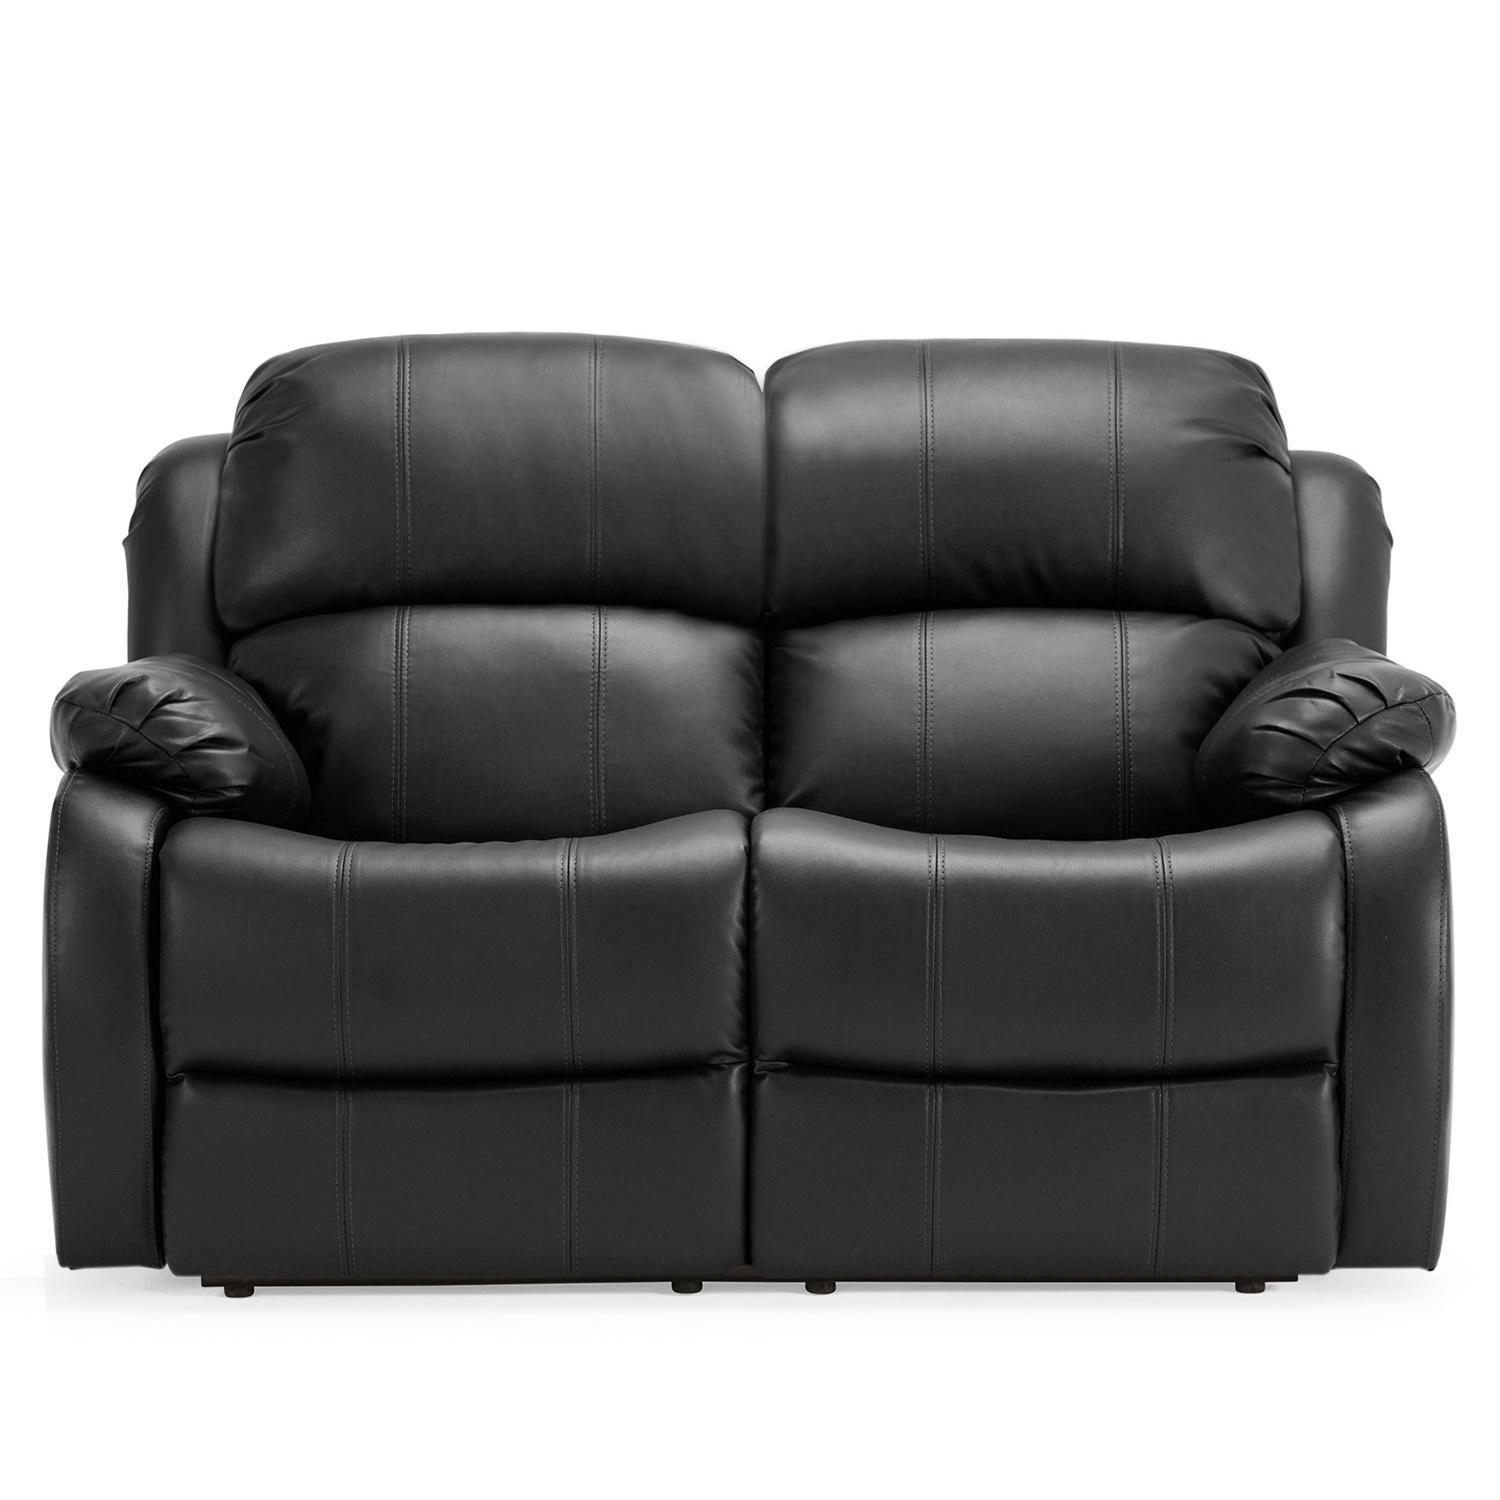 Two Seater Recliner Leather Sofa – Leather Sectional Sofa Inside 2 Seater Recliner Leather Sofas (Image 19 of 20)